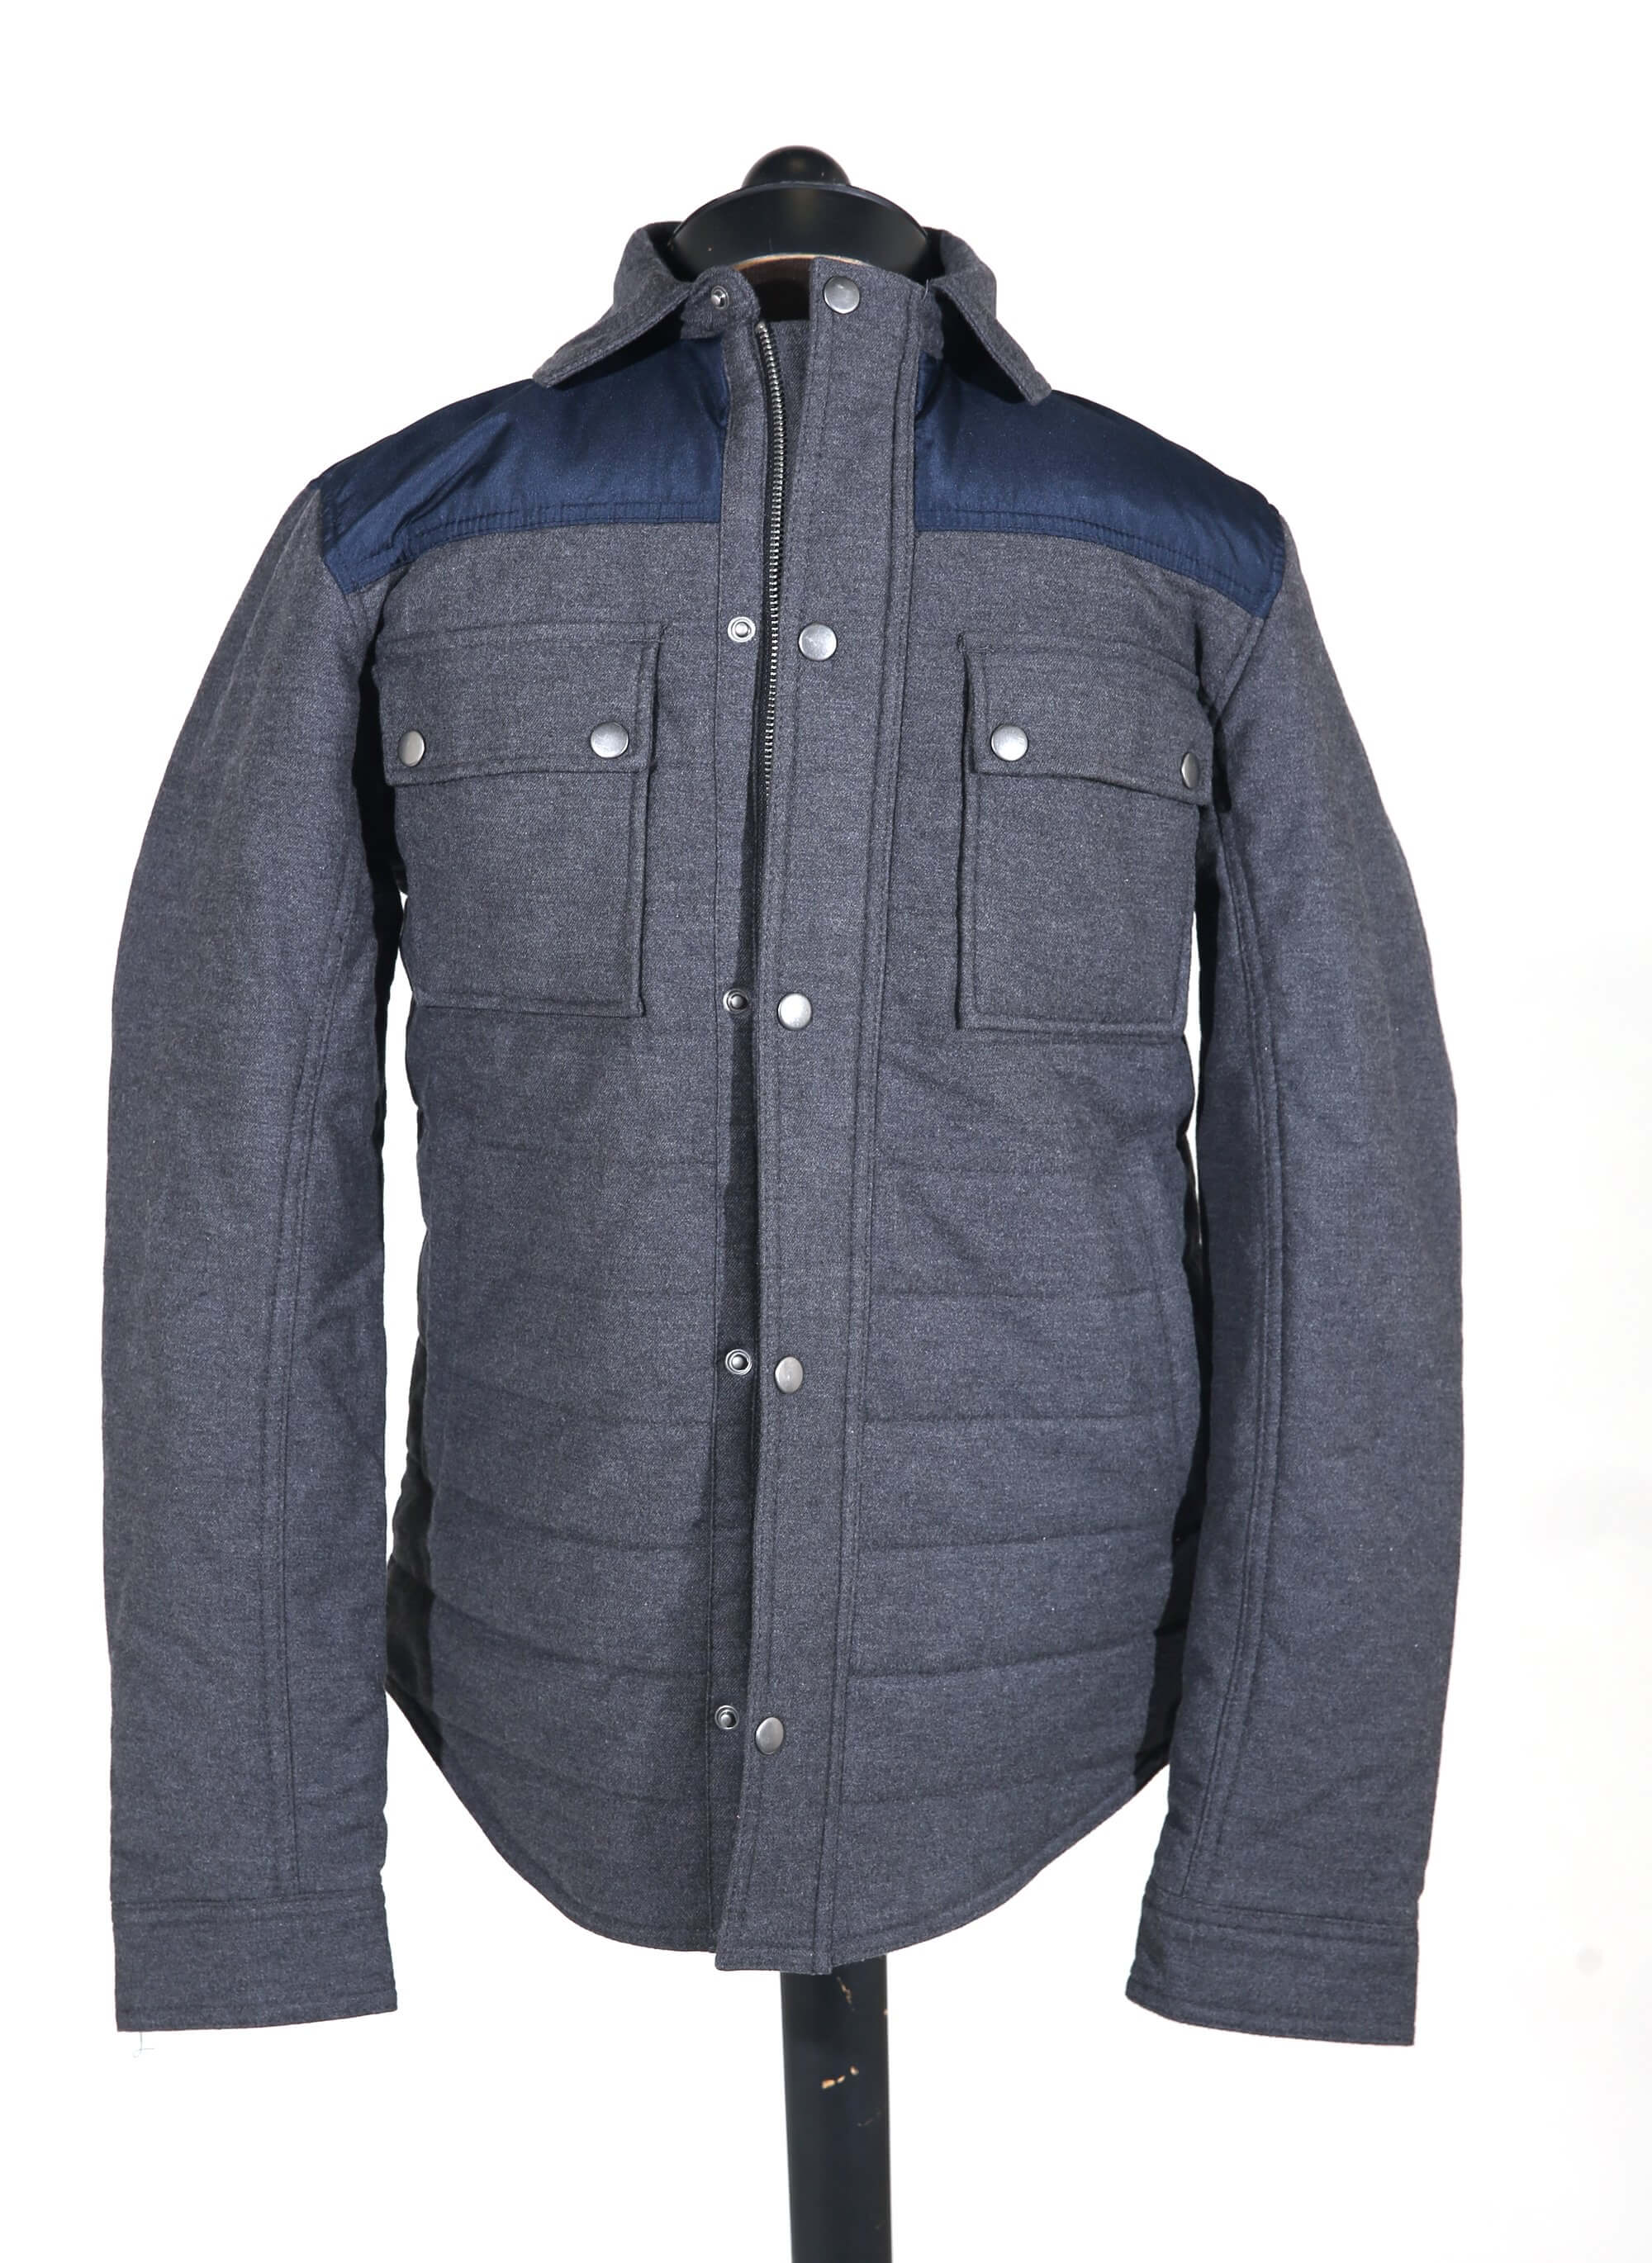 Image of Men's quilted jacket